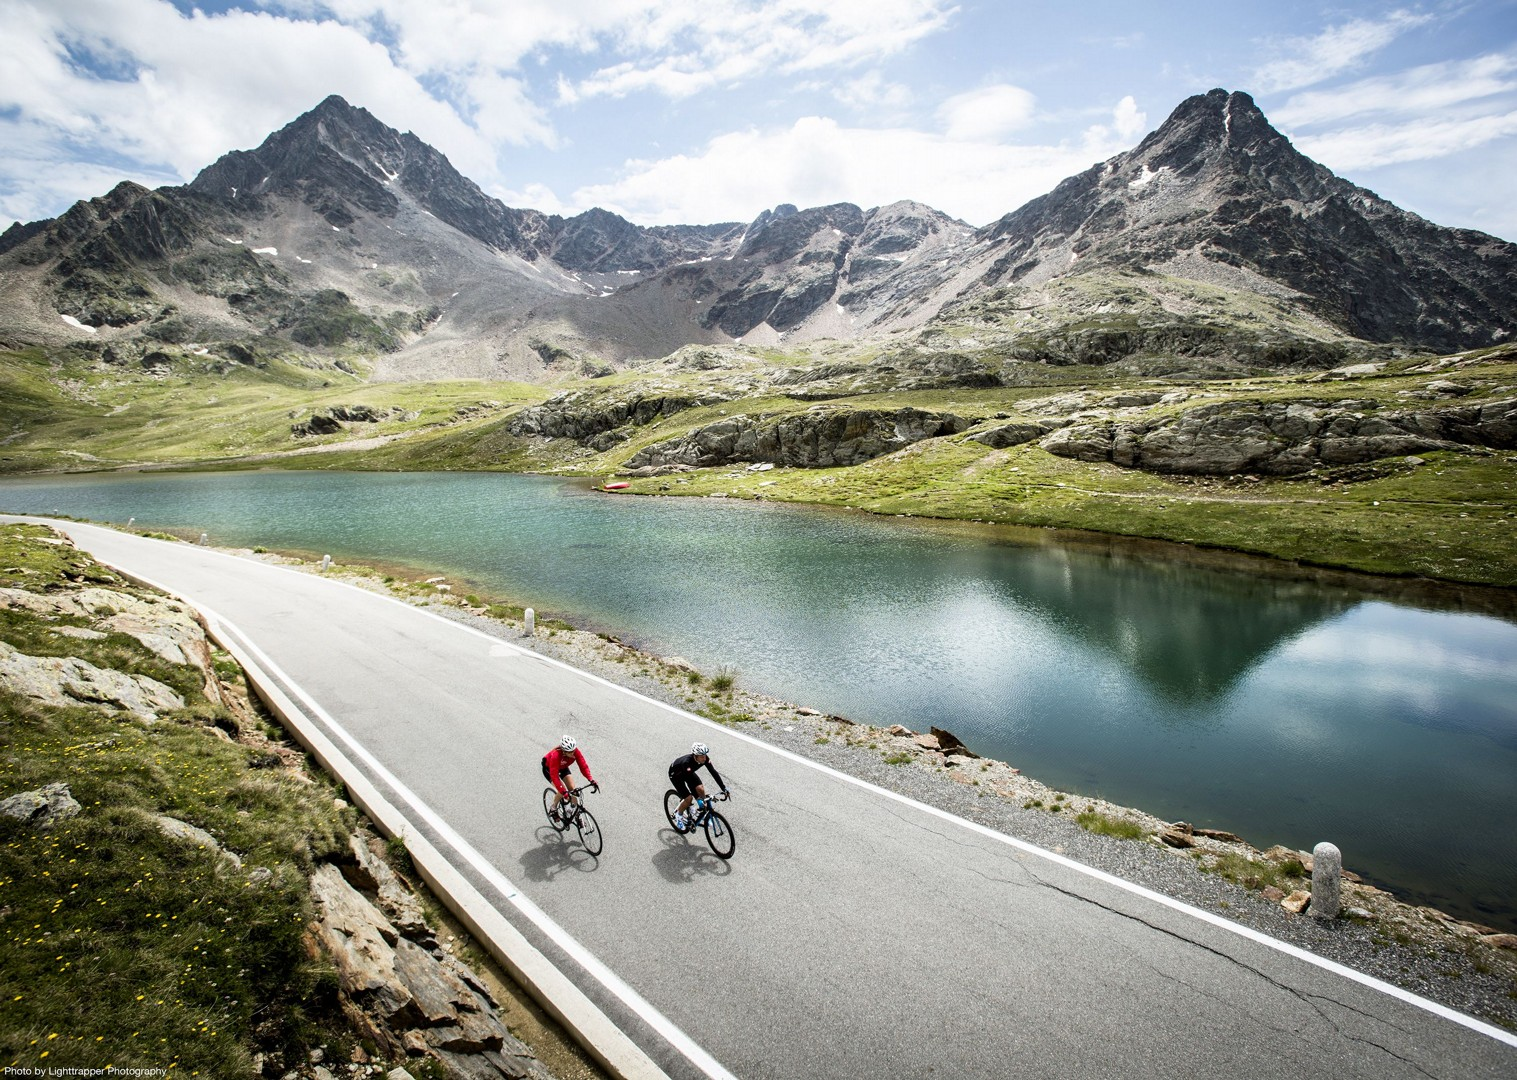 gavia-guided-road-cycling-holiday.jpg - Italy - Alps and Dolomites - Giants of the Giro - Guided Road Cycling Holiday - Italia Road Cycling